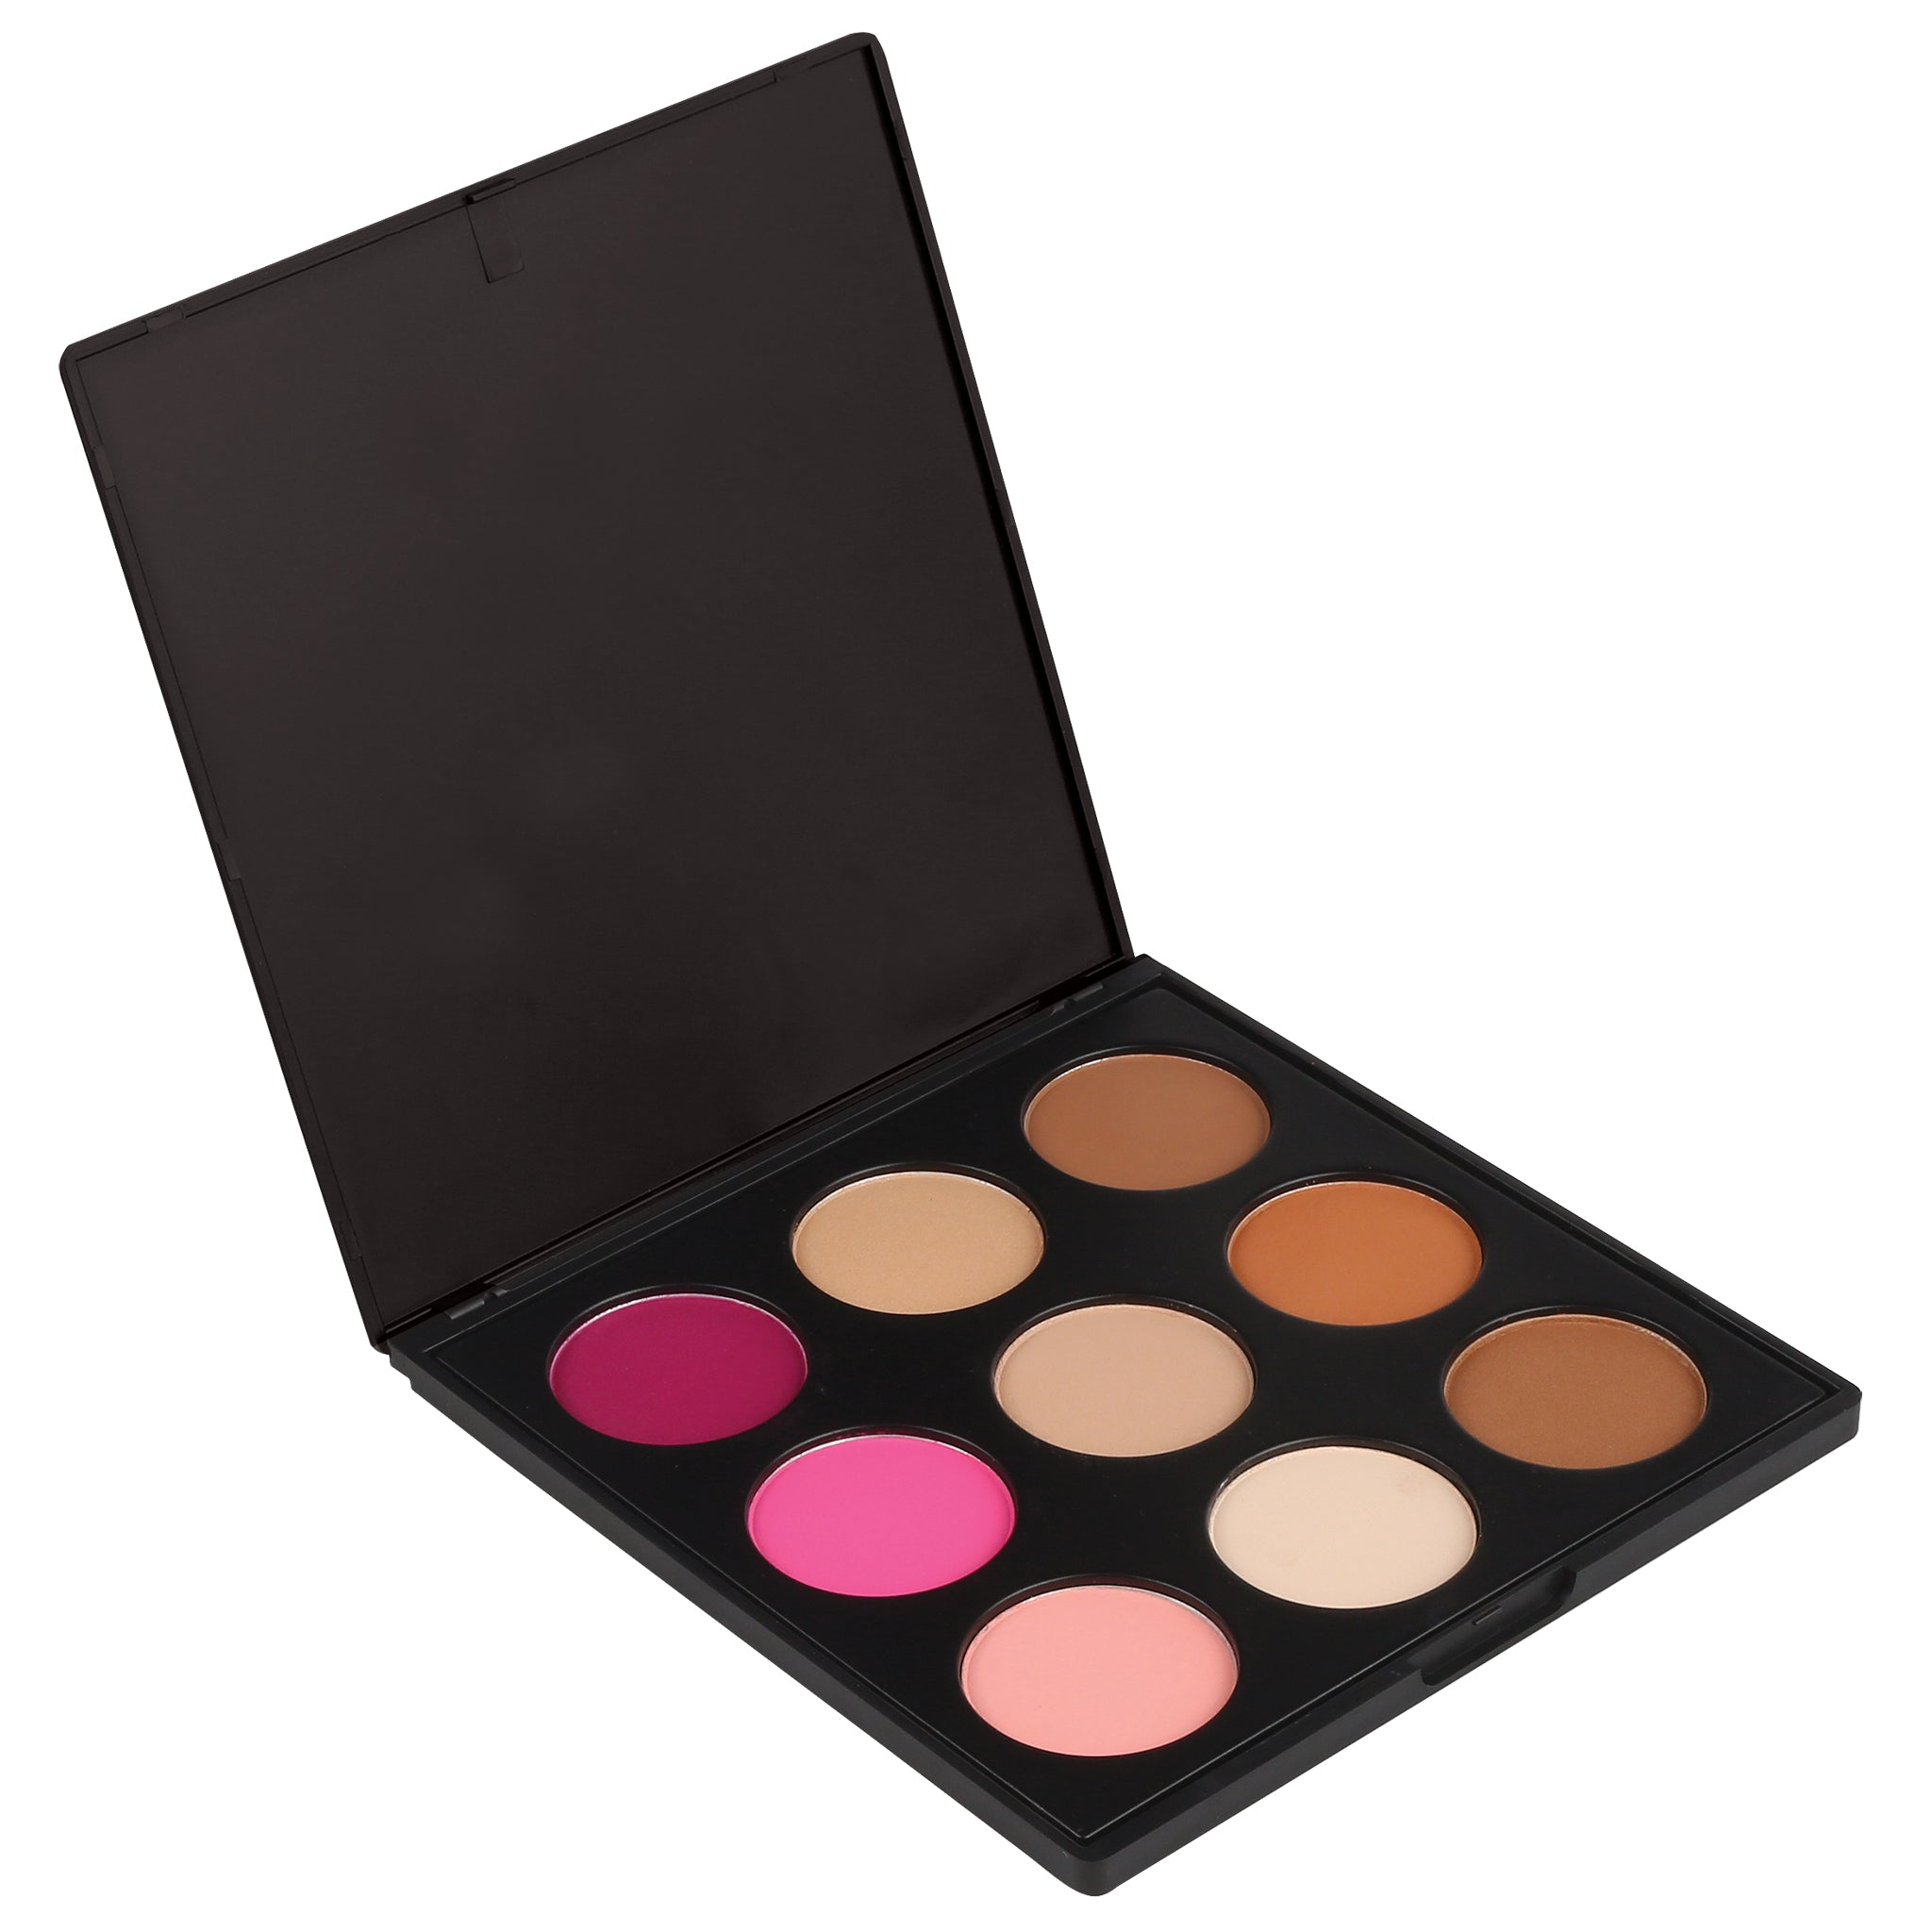 Makeup Palette - Contour Palette-  Sleek Silhouette Palette By Coastal Scents